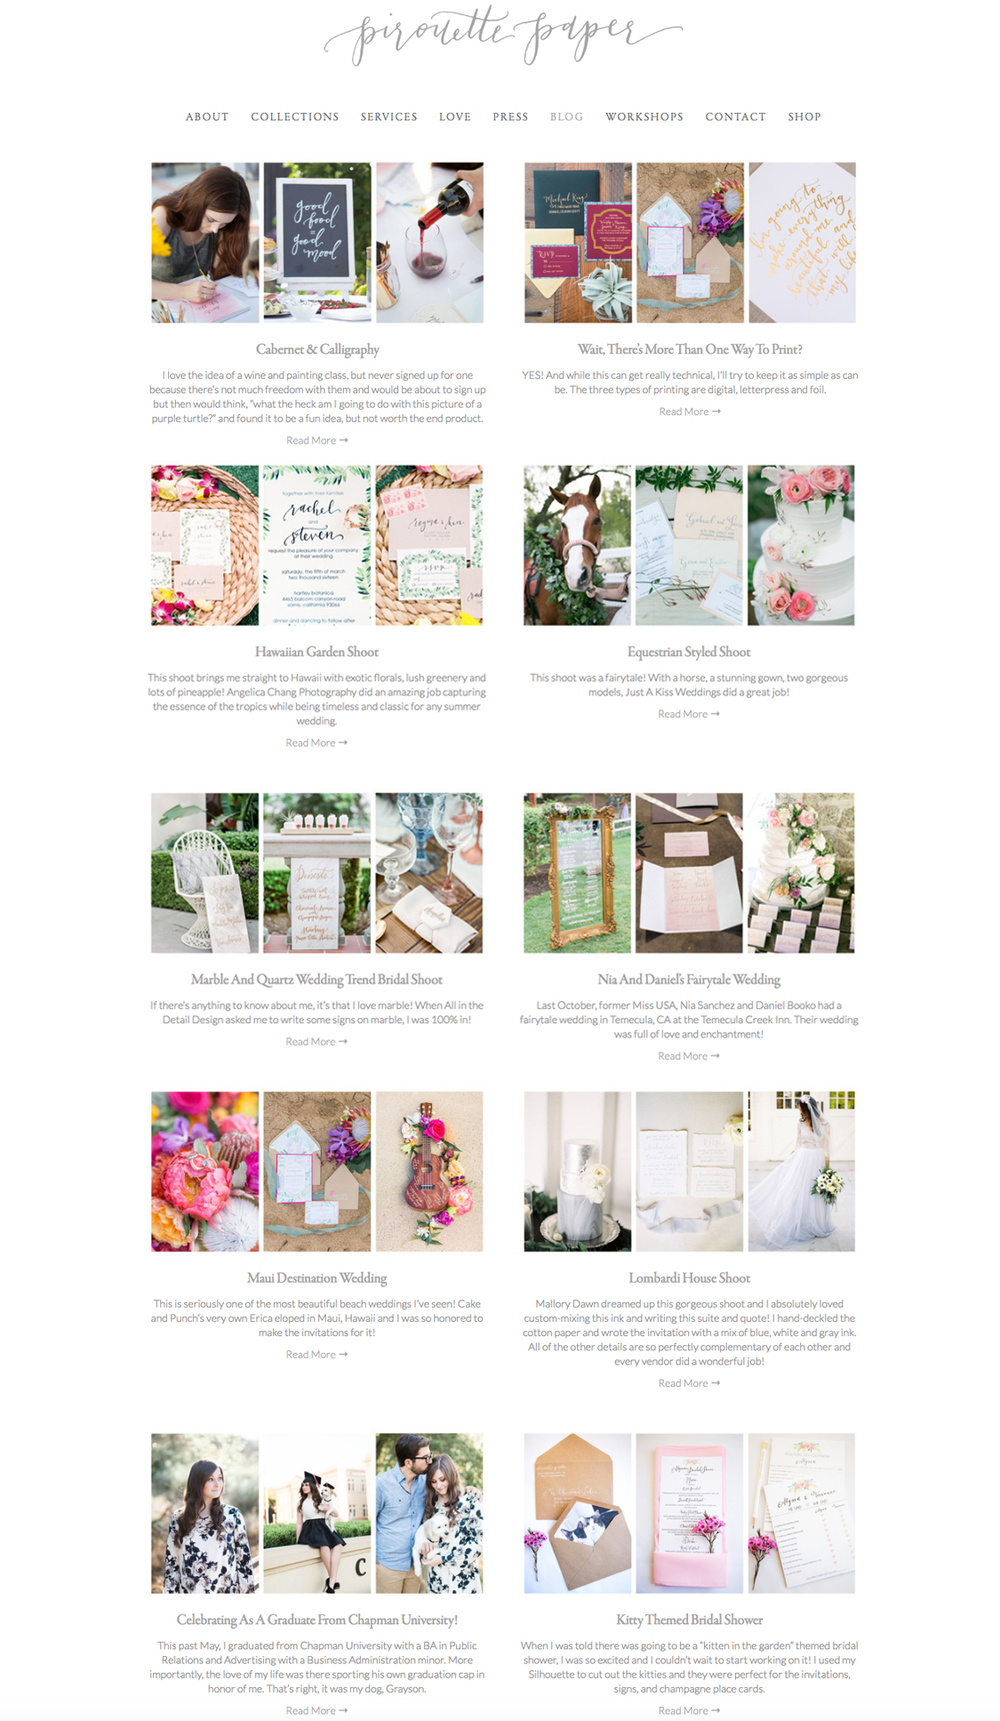 theeditorstouch.com | The Editor's Touch | Squarespace Website Designer | Web Design for Pirouette Paper Company